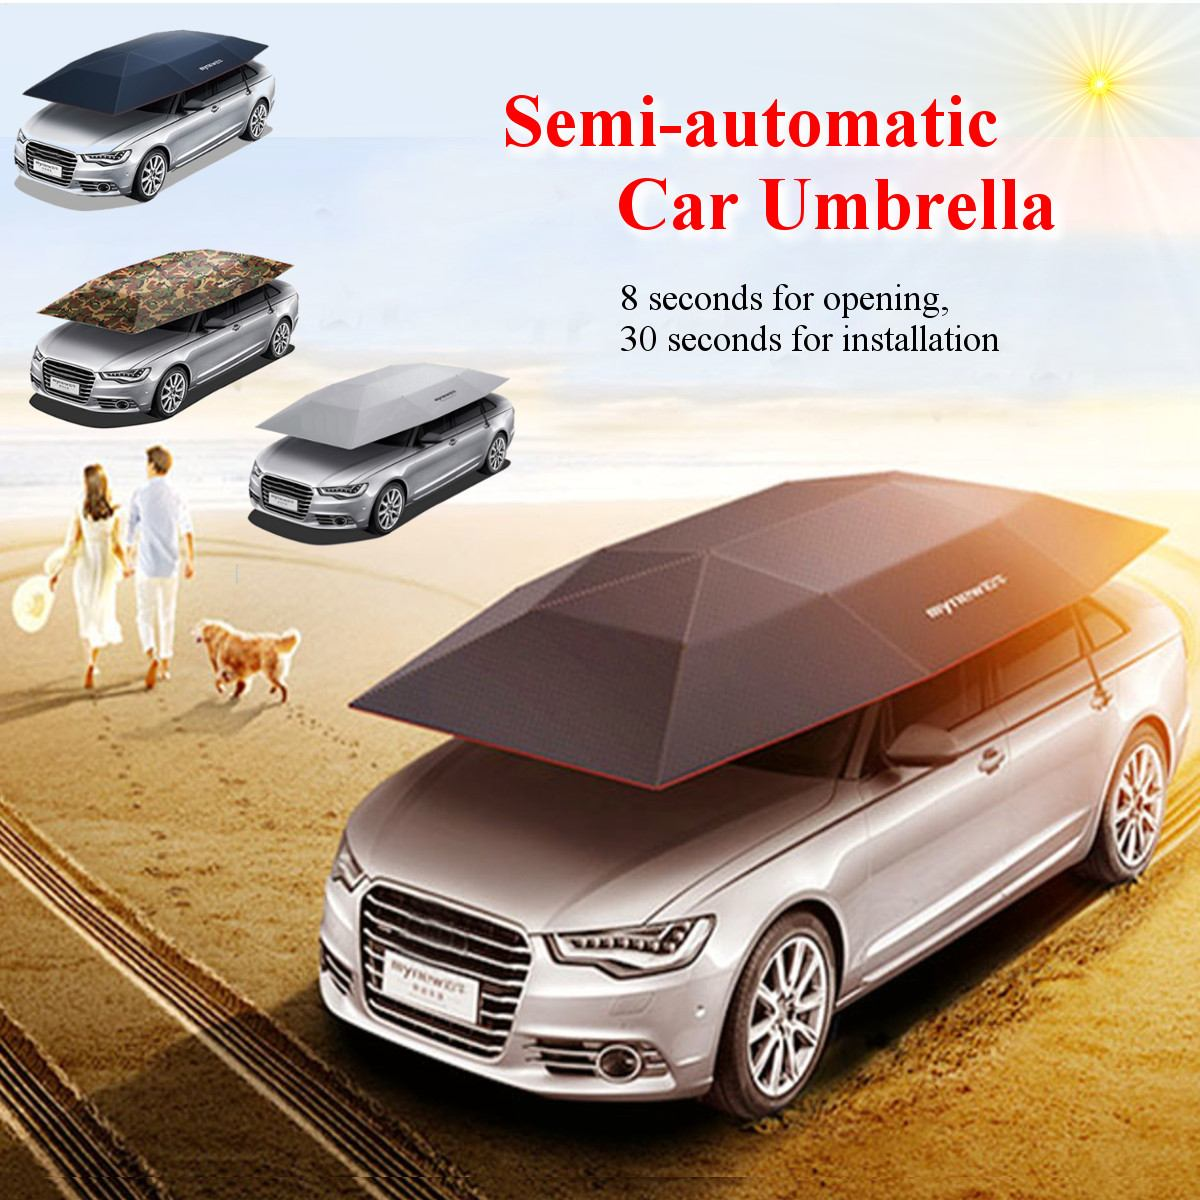 Portable Semi-automatic Car Umbrella Sunshade Roof Cover Outdoor Tent UV ProtectionPortable Semi-automatic Car Umbrella Sunshade Roof Cover Outdoor Tent UV Protection